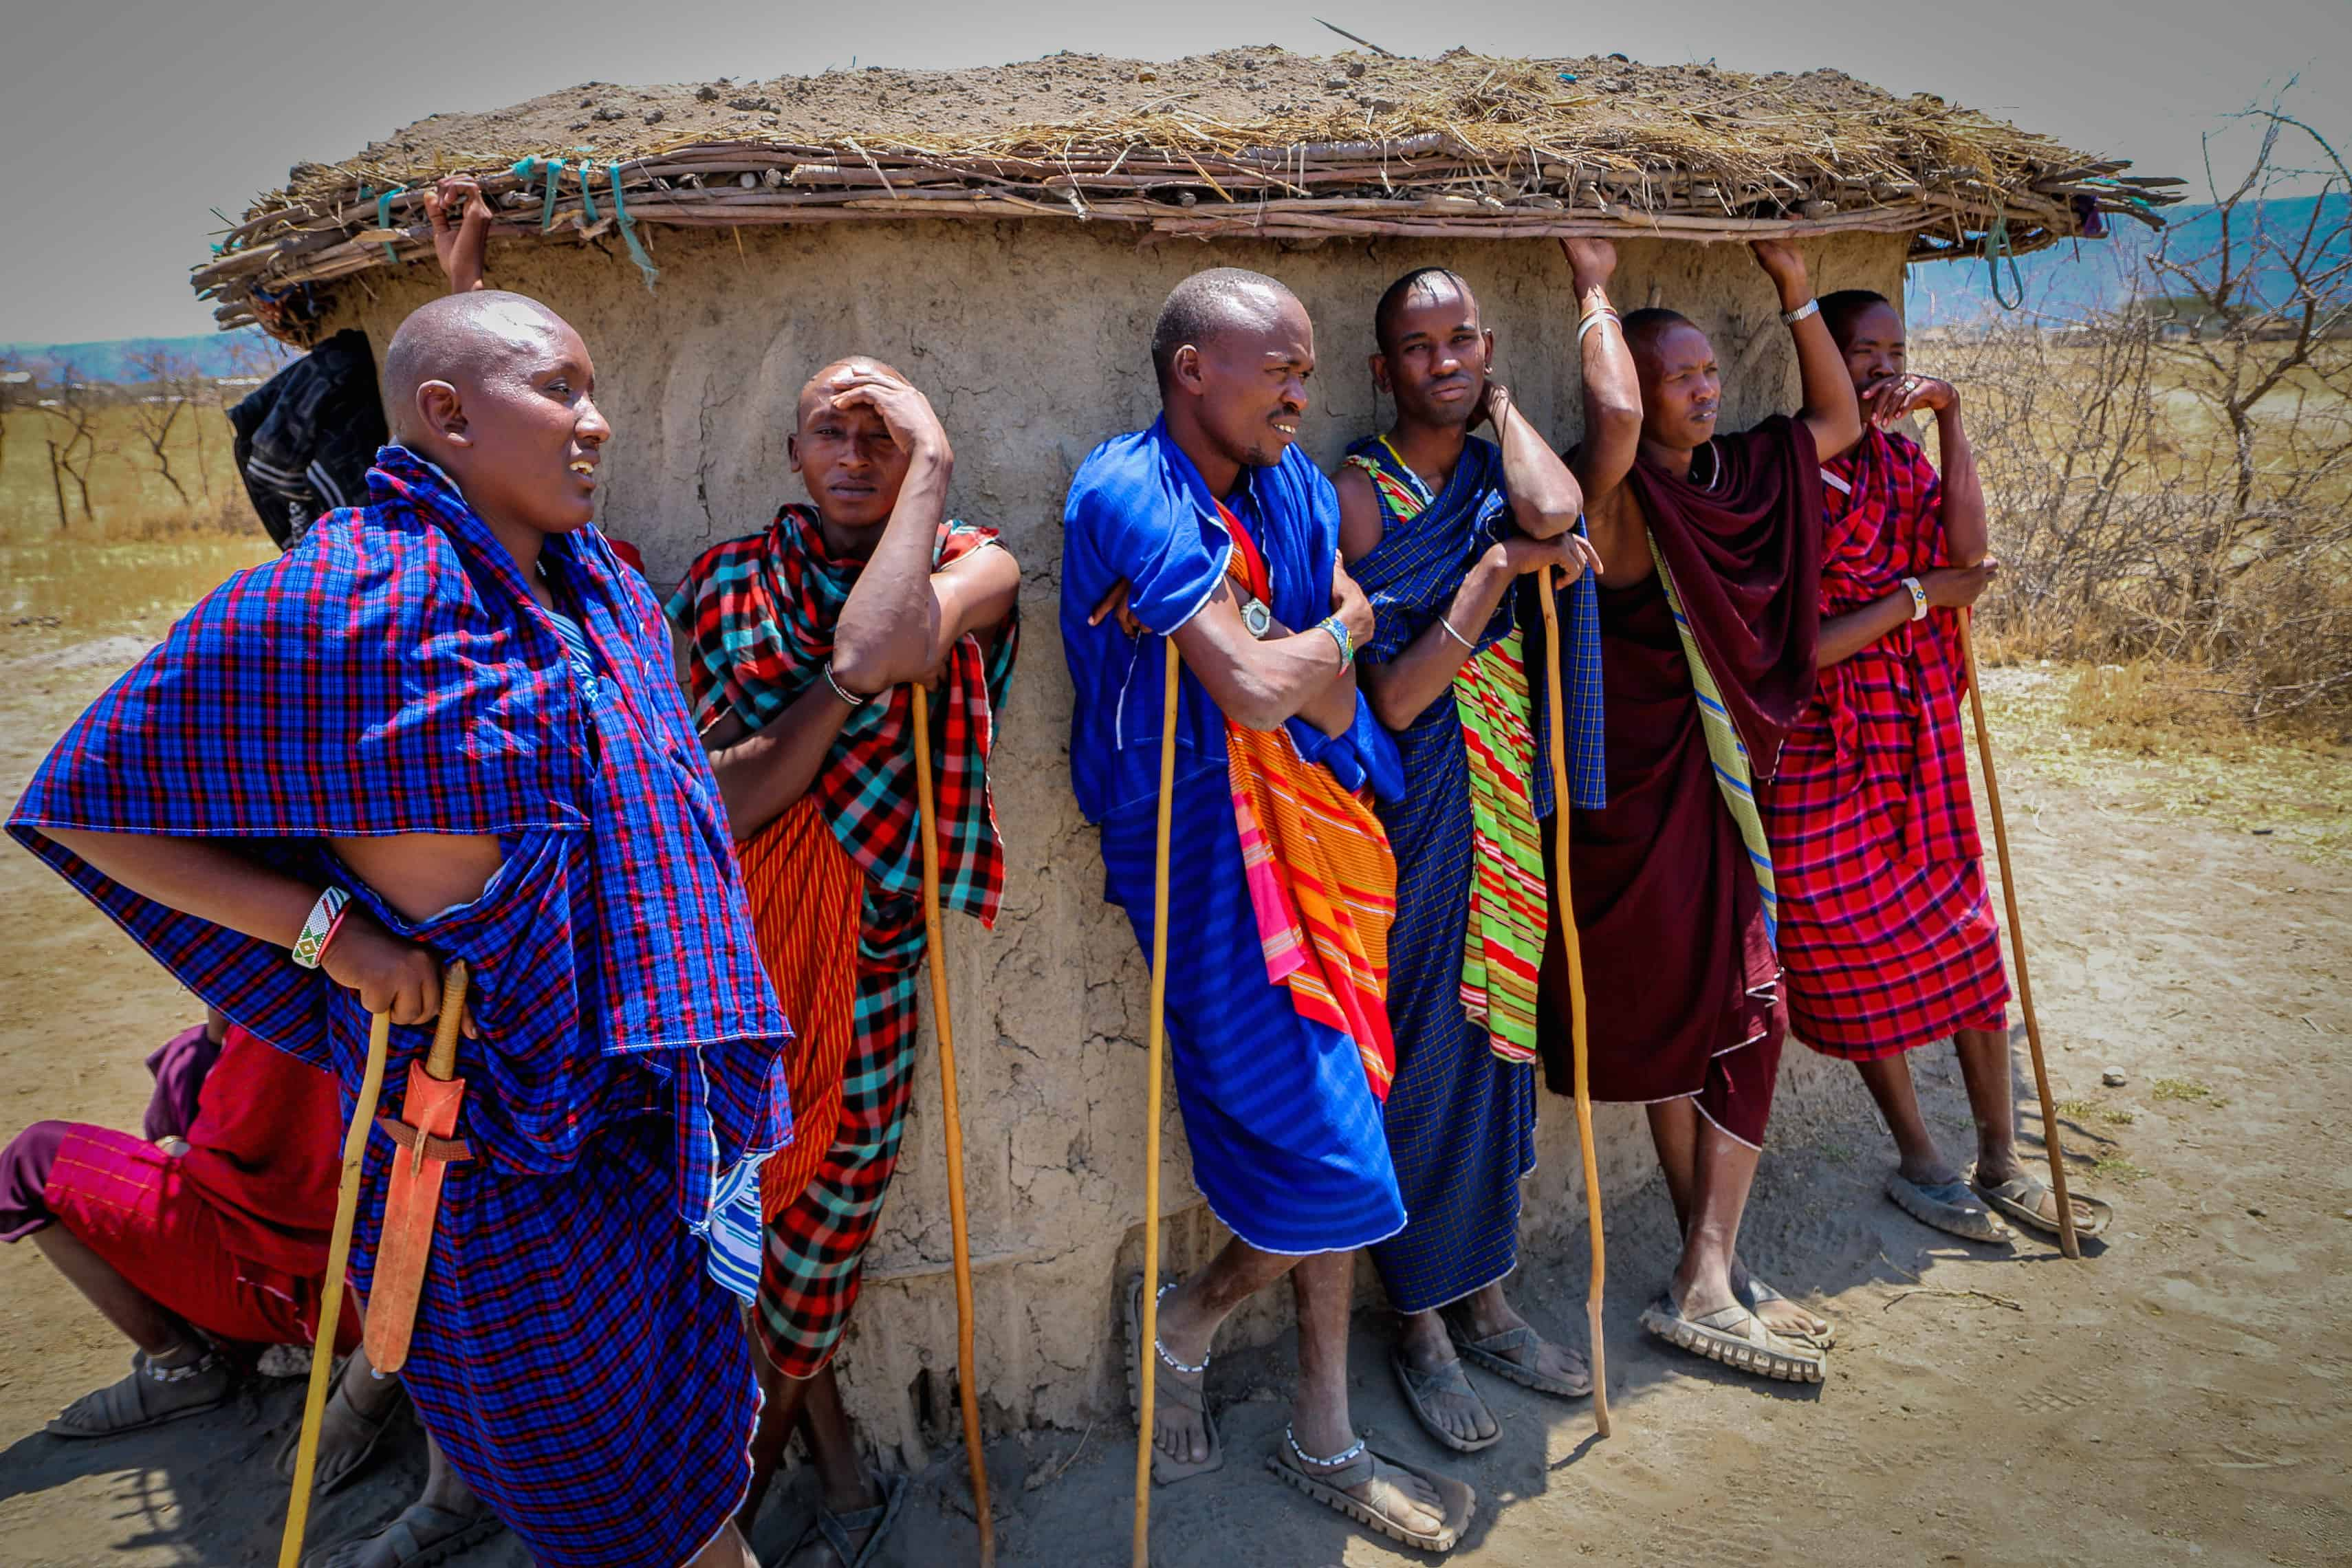 a study of the culture of the maasai people Maasai cultural heritage what is maasai cultural heritage a community based culture-made people spectators rather than rights against tk (need for in-depth study on the contribution of tk to the world development) why community protect tktces,gr valuing tk as part of their cultural.